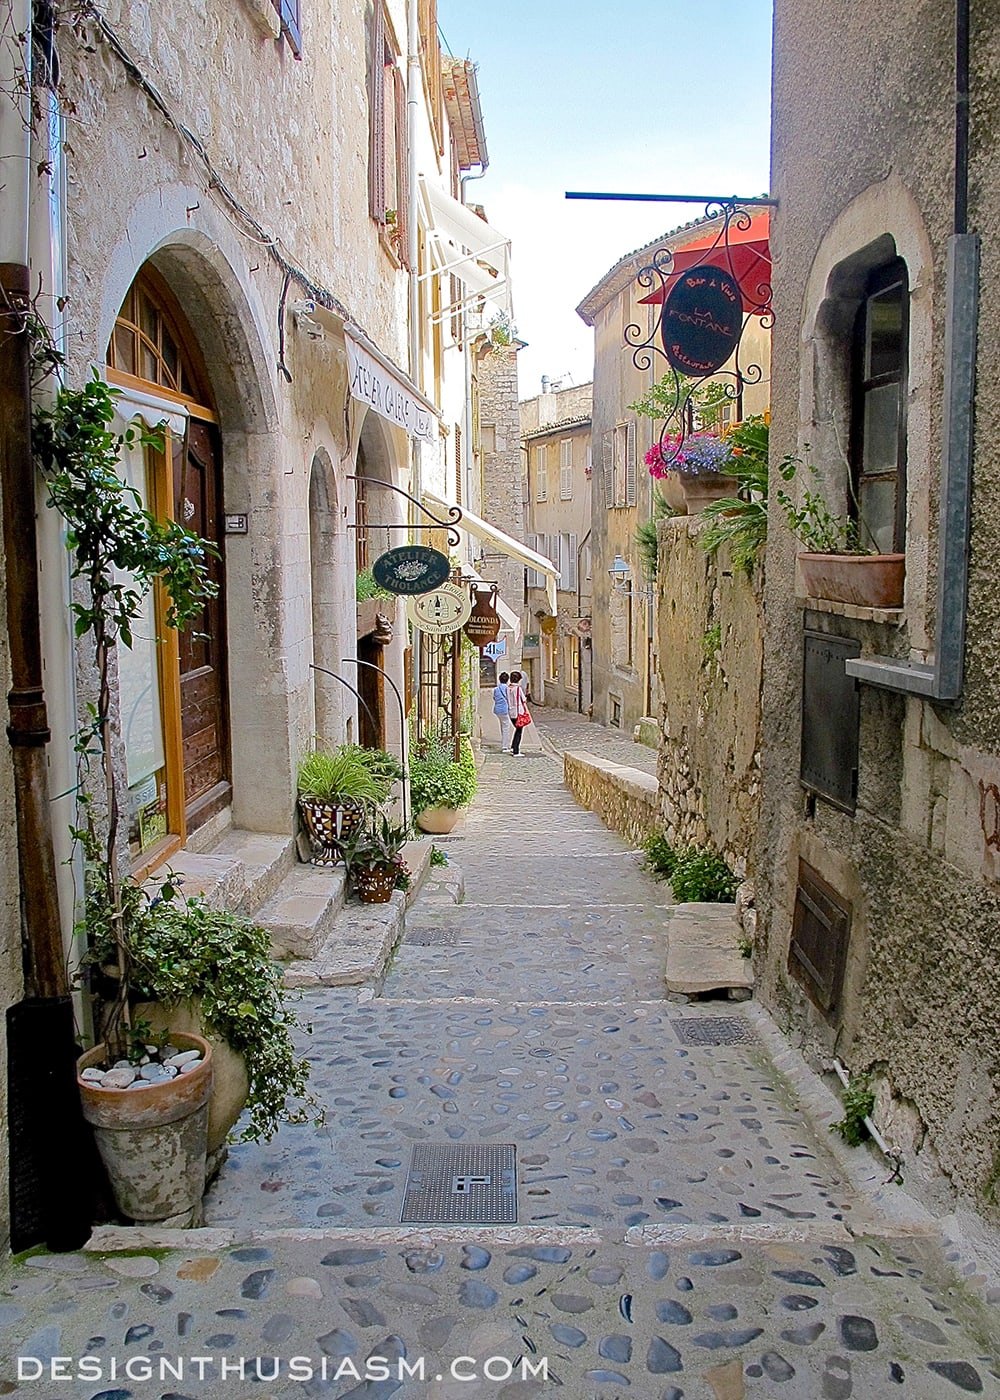 Saint-Paul-de-Vence - The Prettiest Hilltop Village in France - Designthusiasm.com